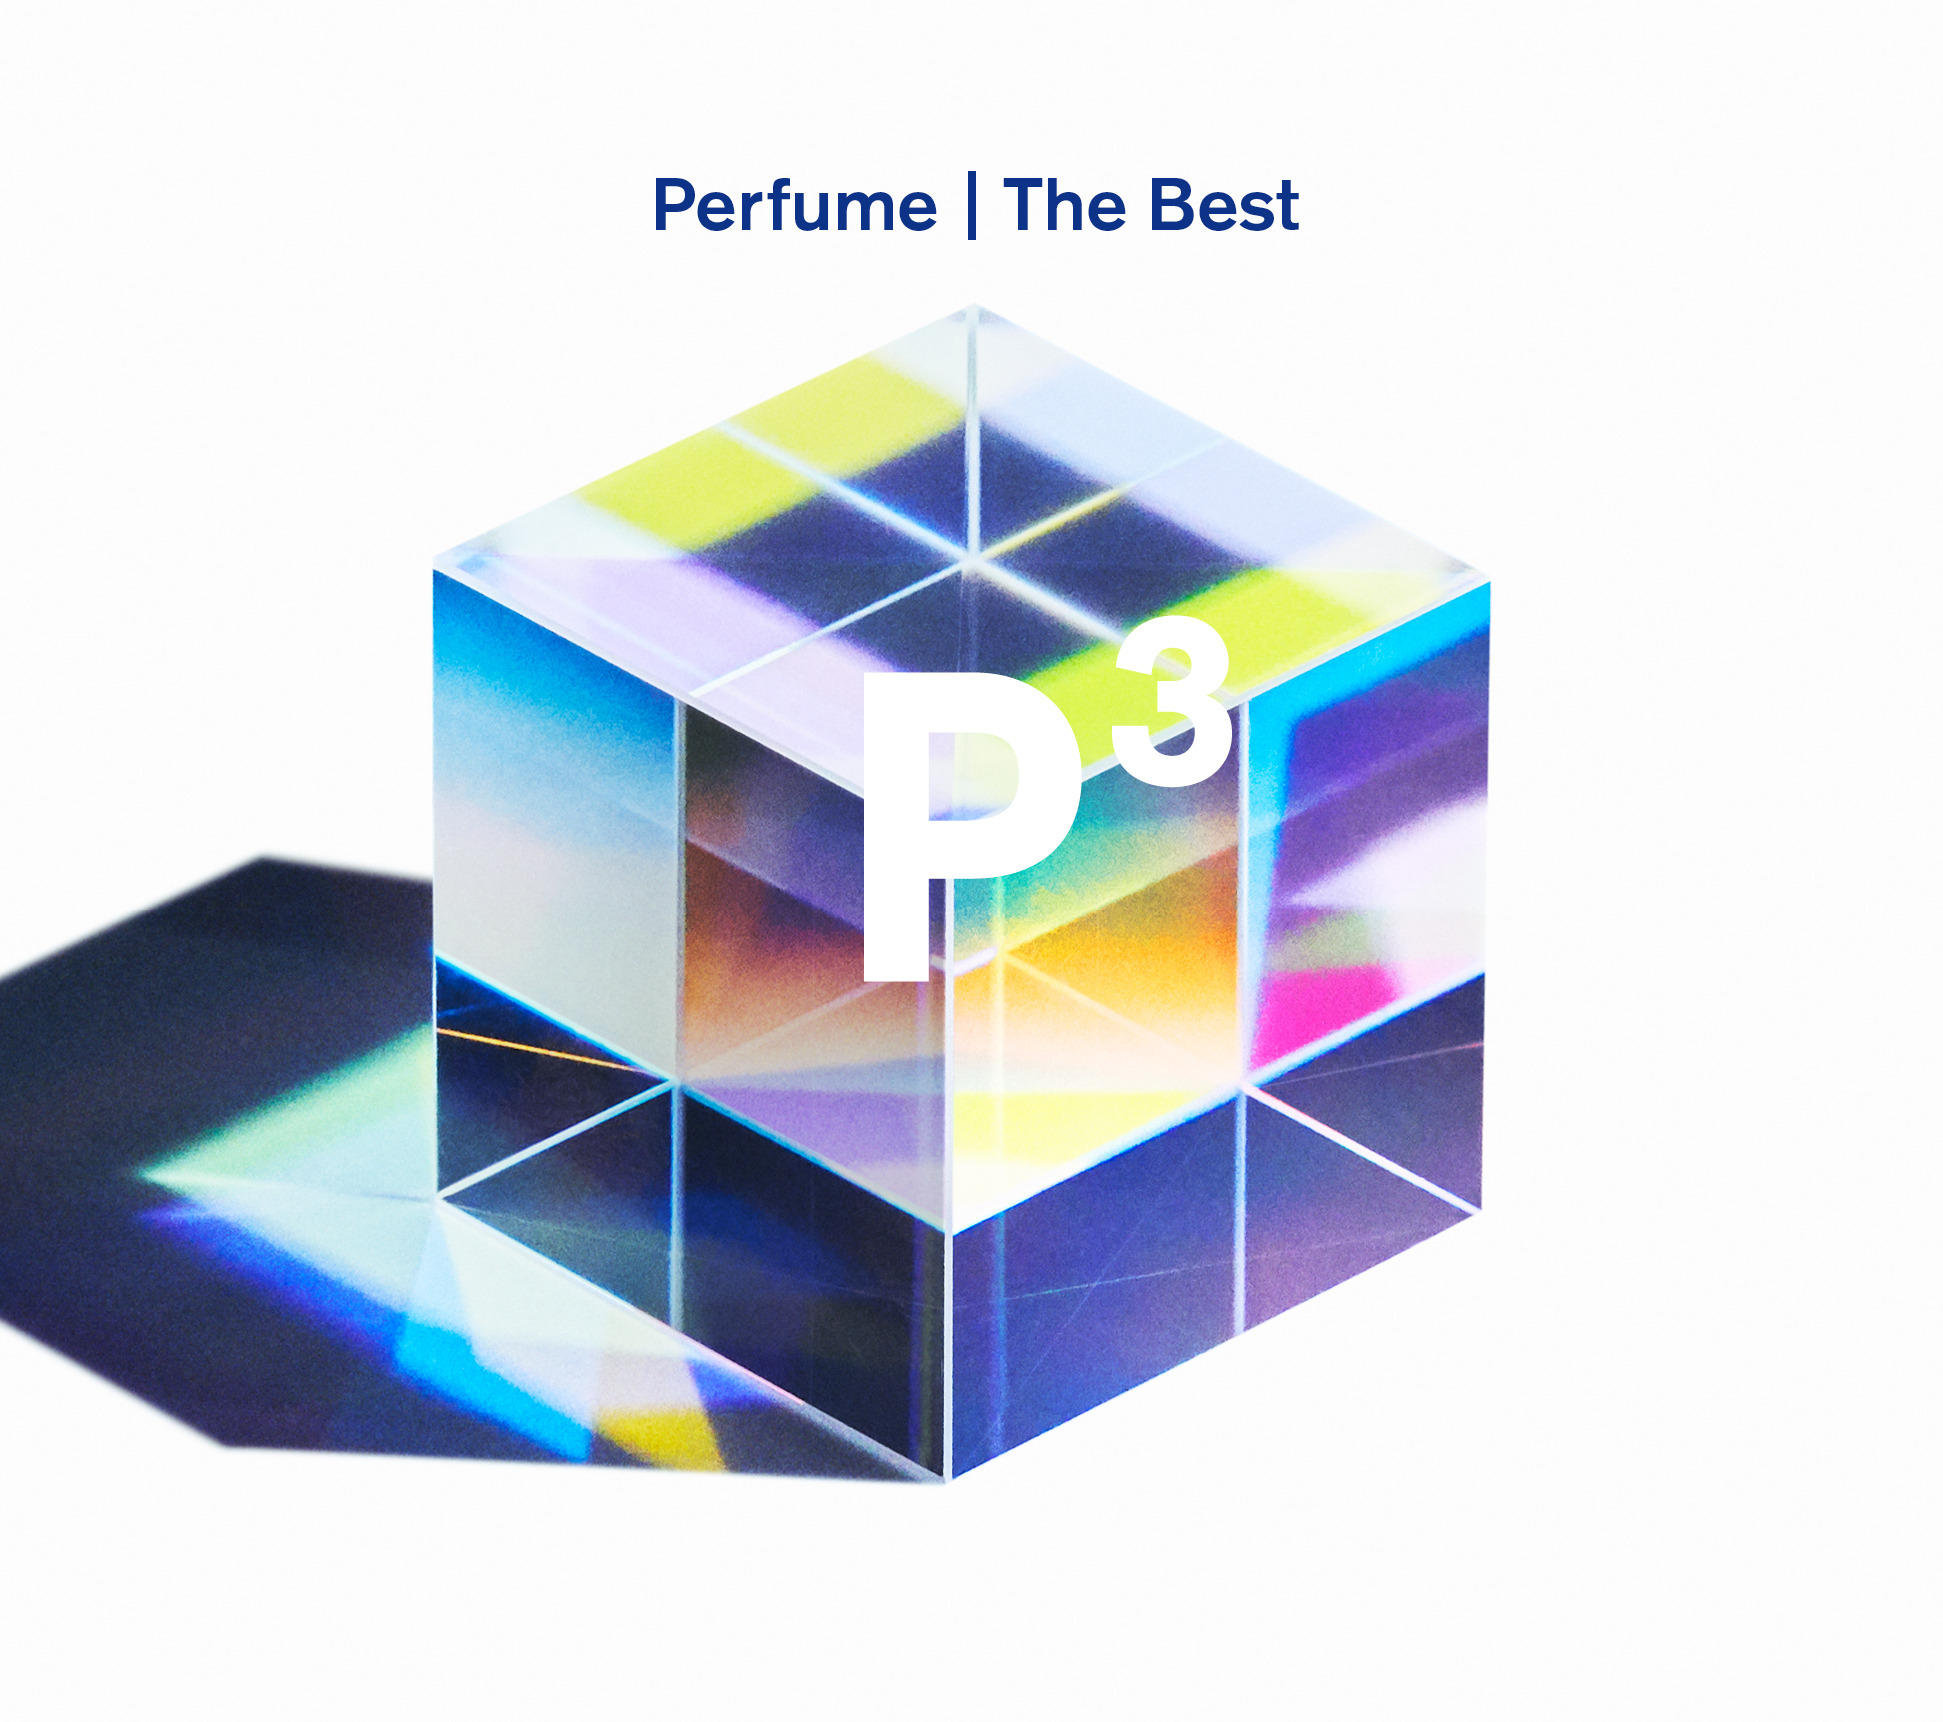 """『Perfume The Best """"P Cubed""""』初回盤"""